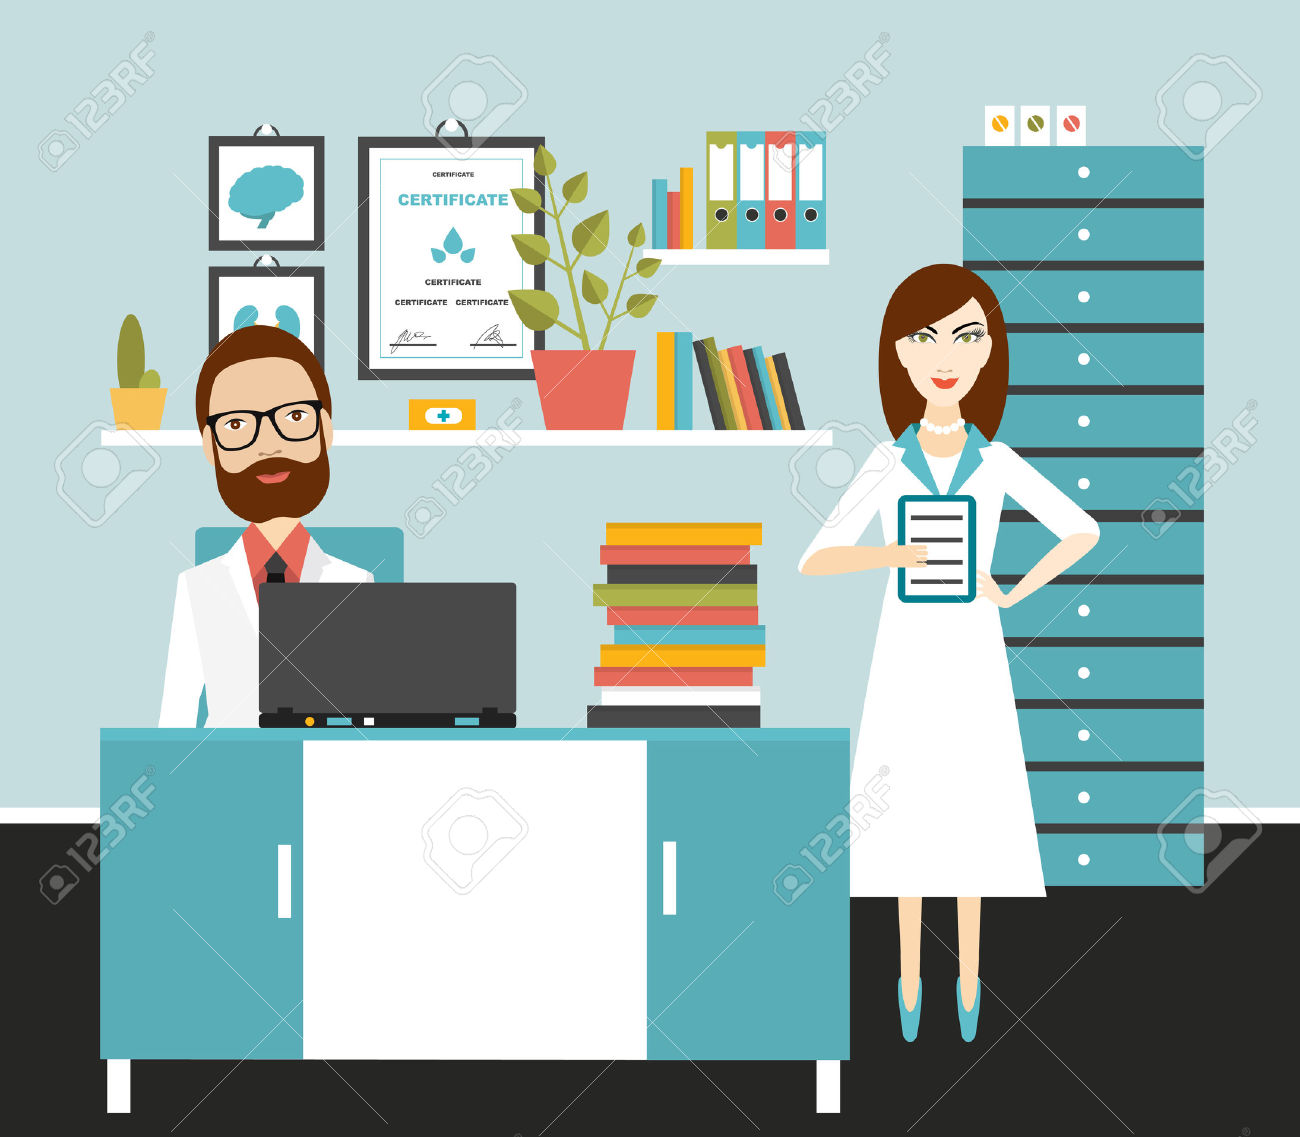 Treatment clipart doctor's office Doctor clipart job office job